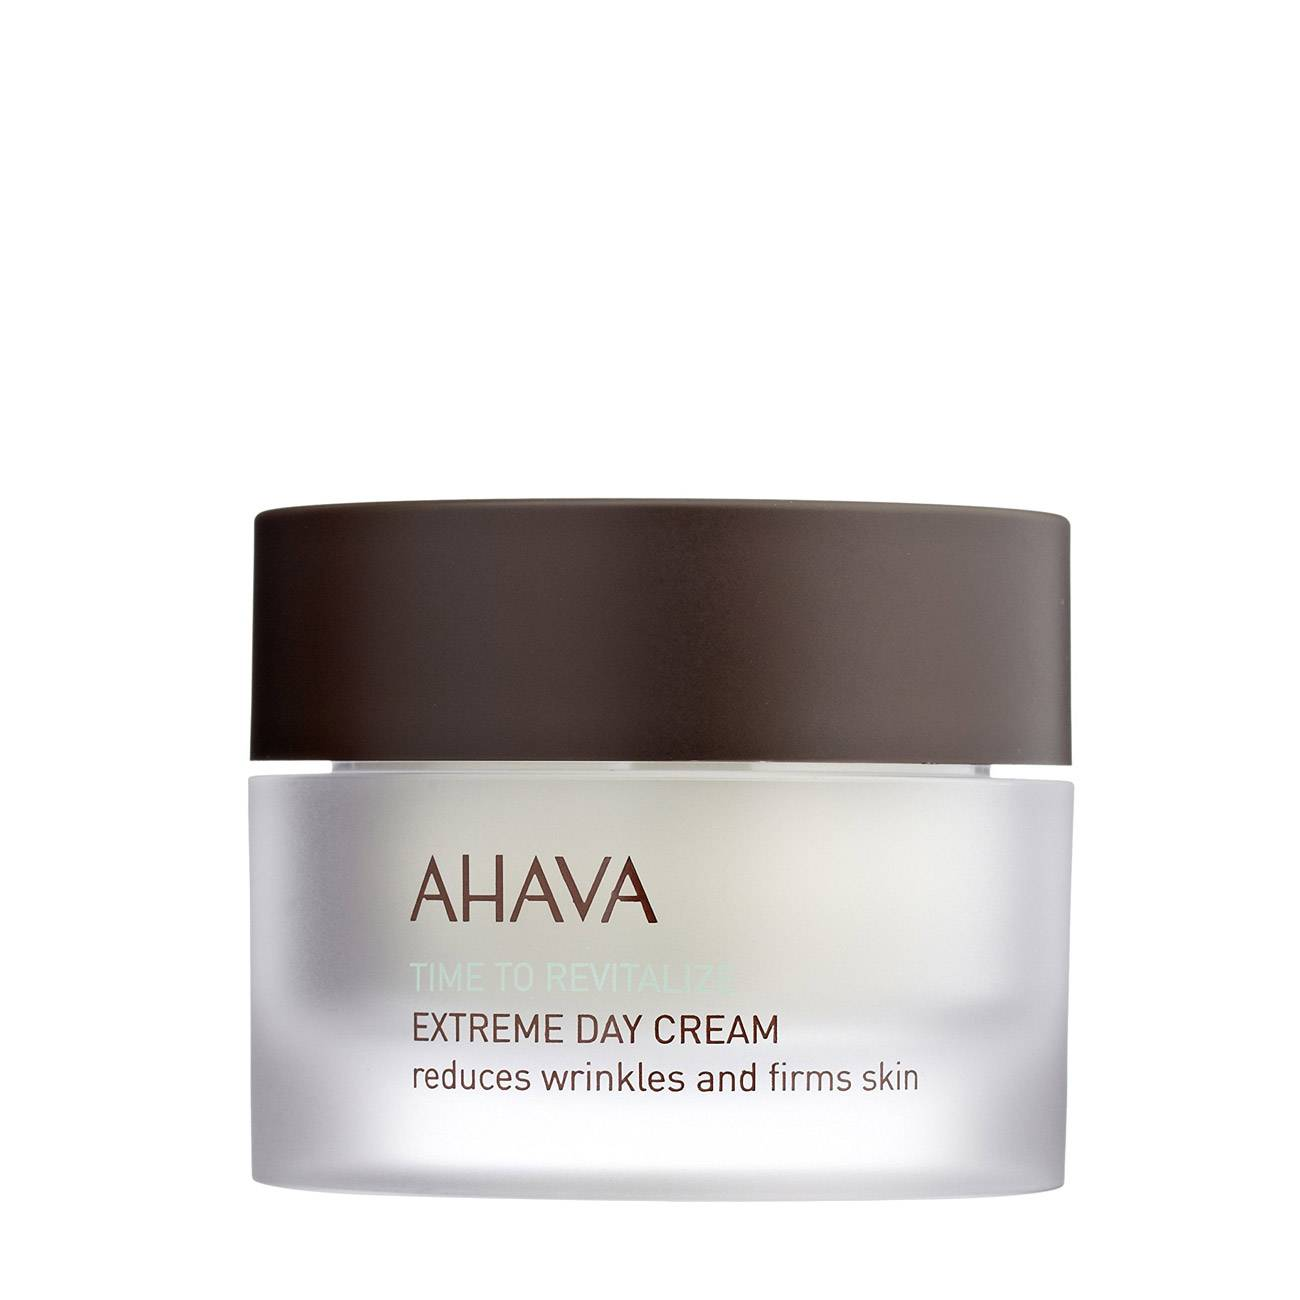 Time To Revitalize Extreme Day Cream 50ml